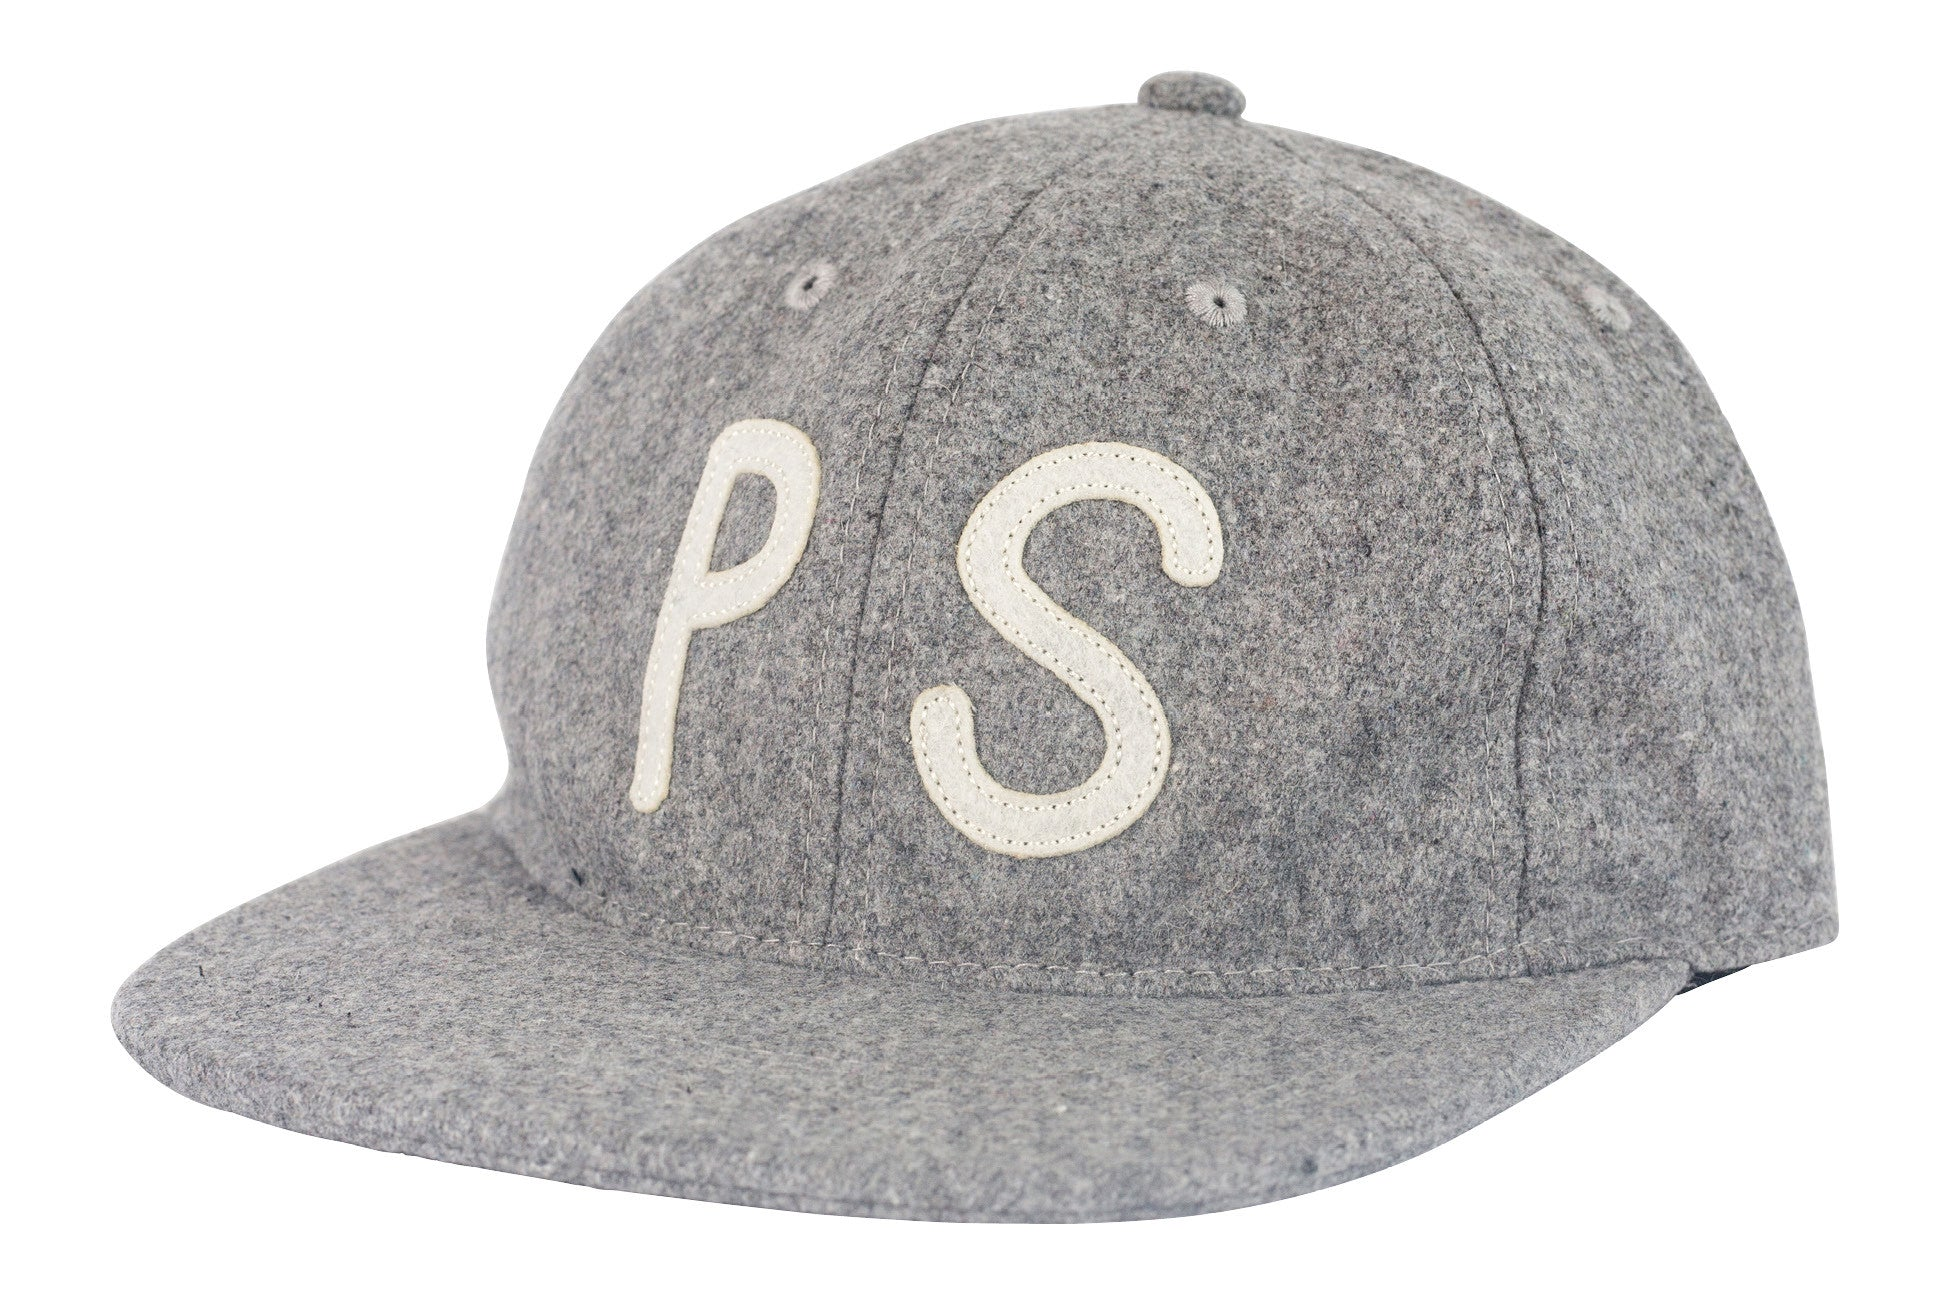 PS Wool-Light Gray